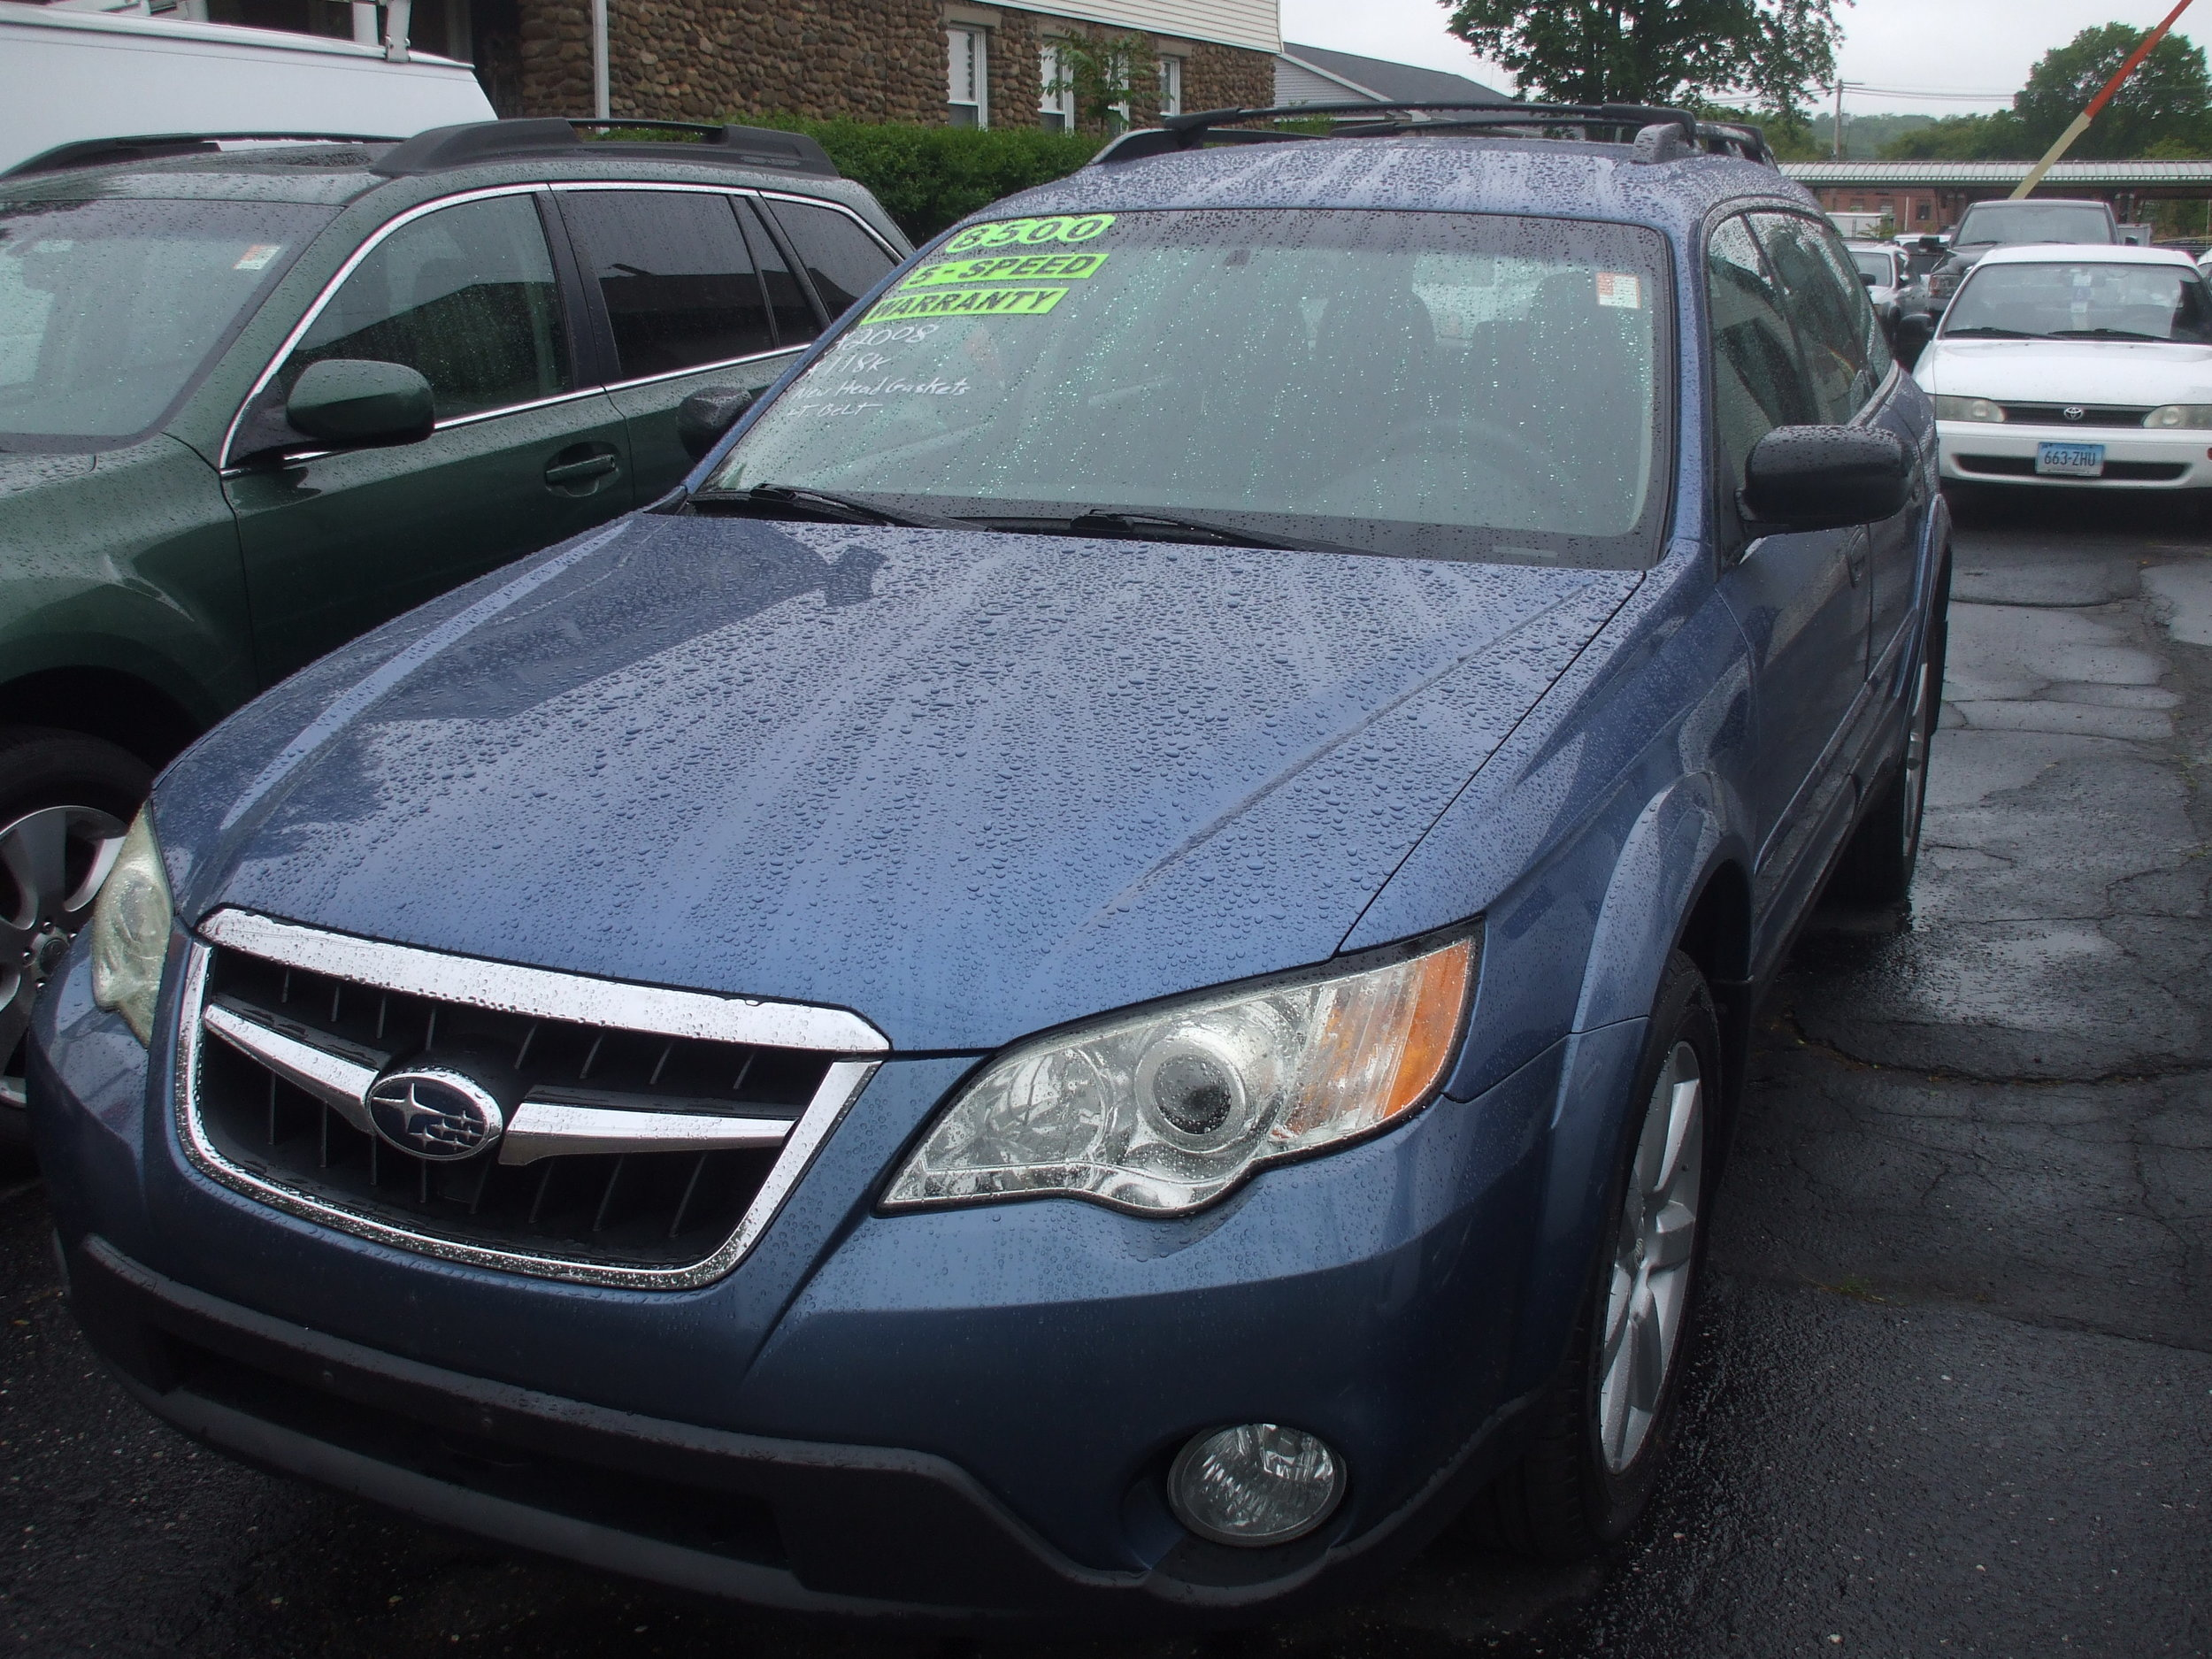 2008 Subaru Outback $ 8,500  5spd great condition stock # 17100 118k call or stop by at 203-265-6142 Cerrito's Auto Sales 280 N. Colony St Wallingford Ct 06492.